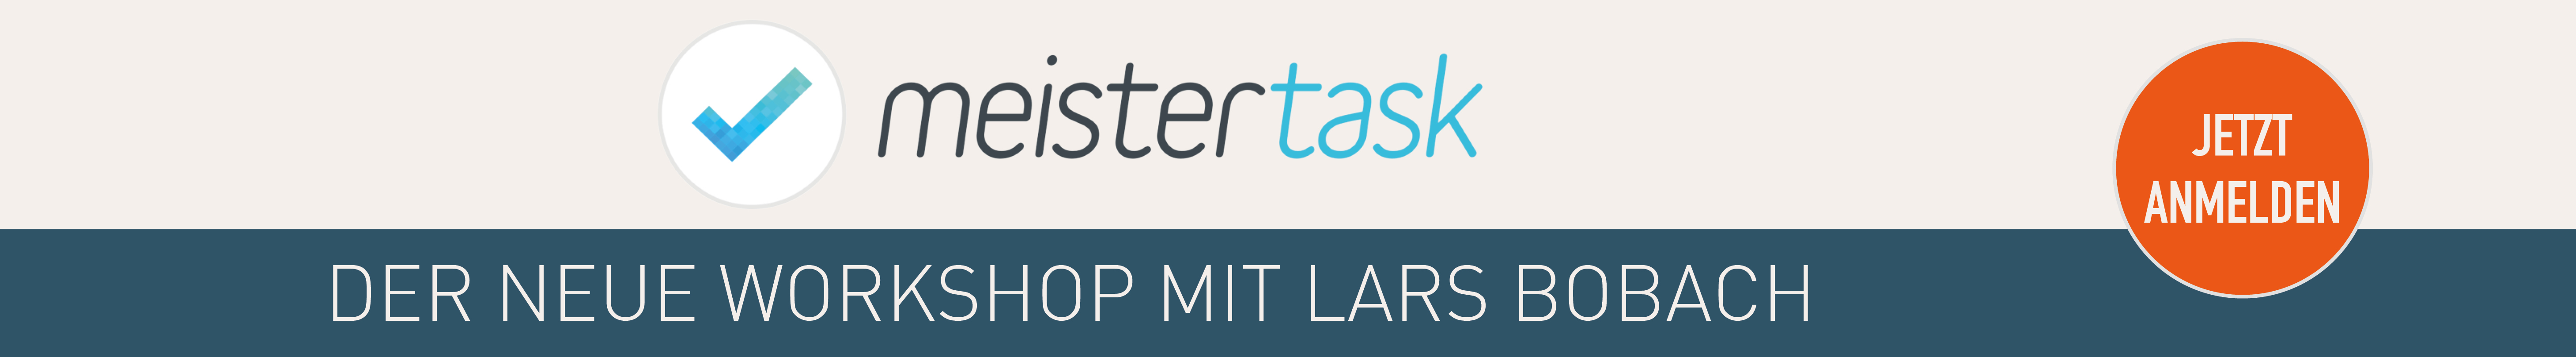 Meistertask Workshop mit Lars Bobach